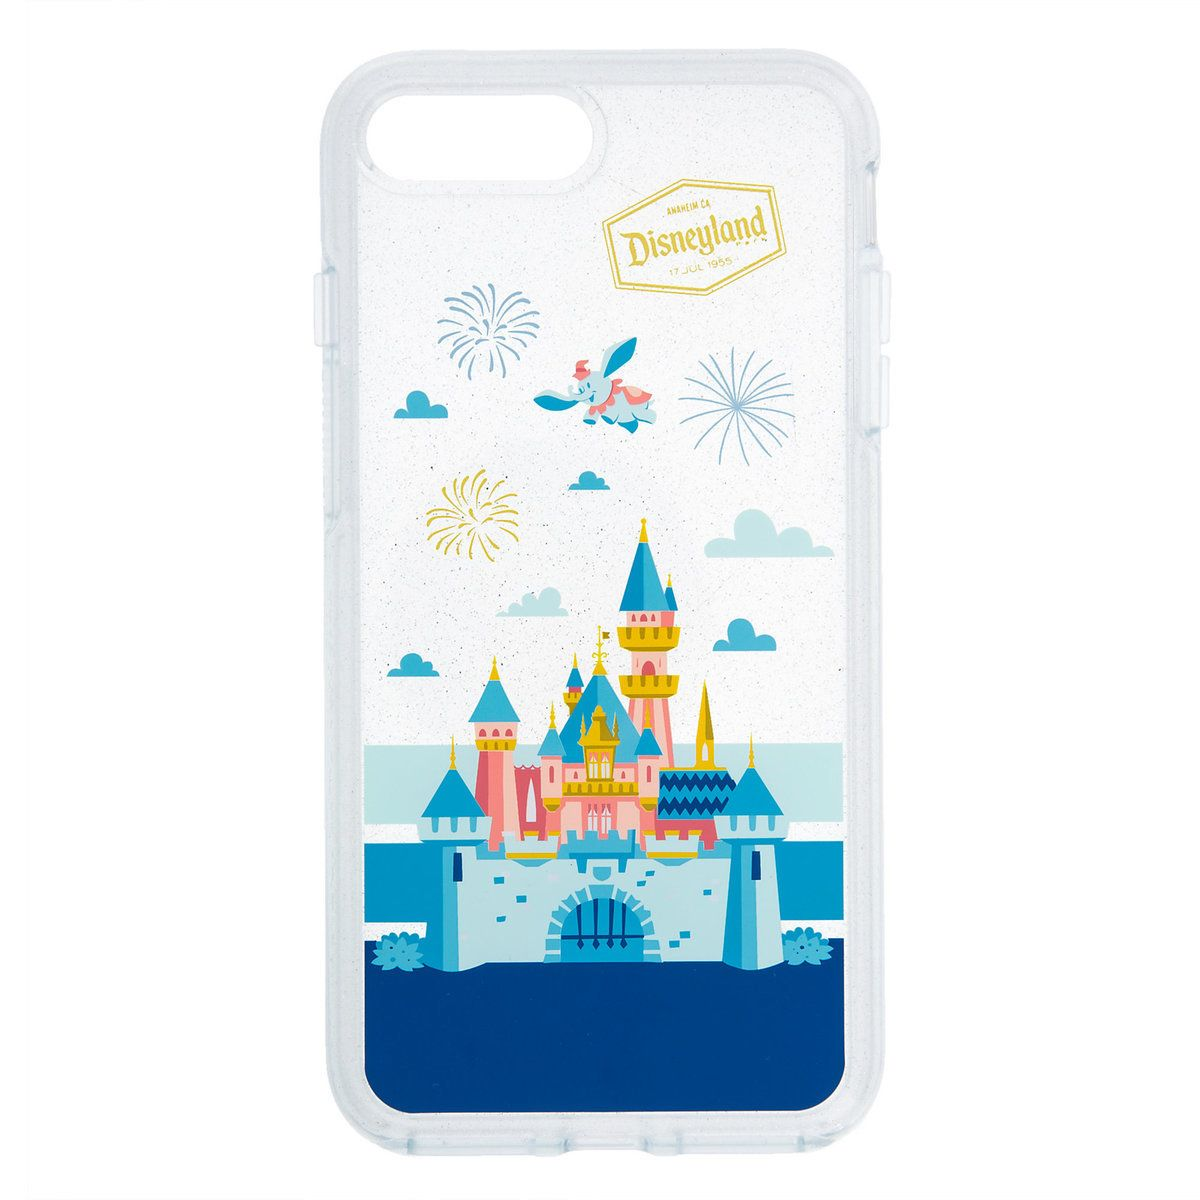 Product Image Of Disneyland Otterbox Iphone 7 Plus Case 1 Iphone Cases Disney Iphone Cases Otterbox Iphone Cases Cute